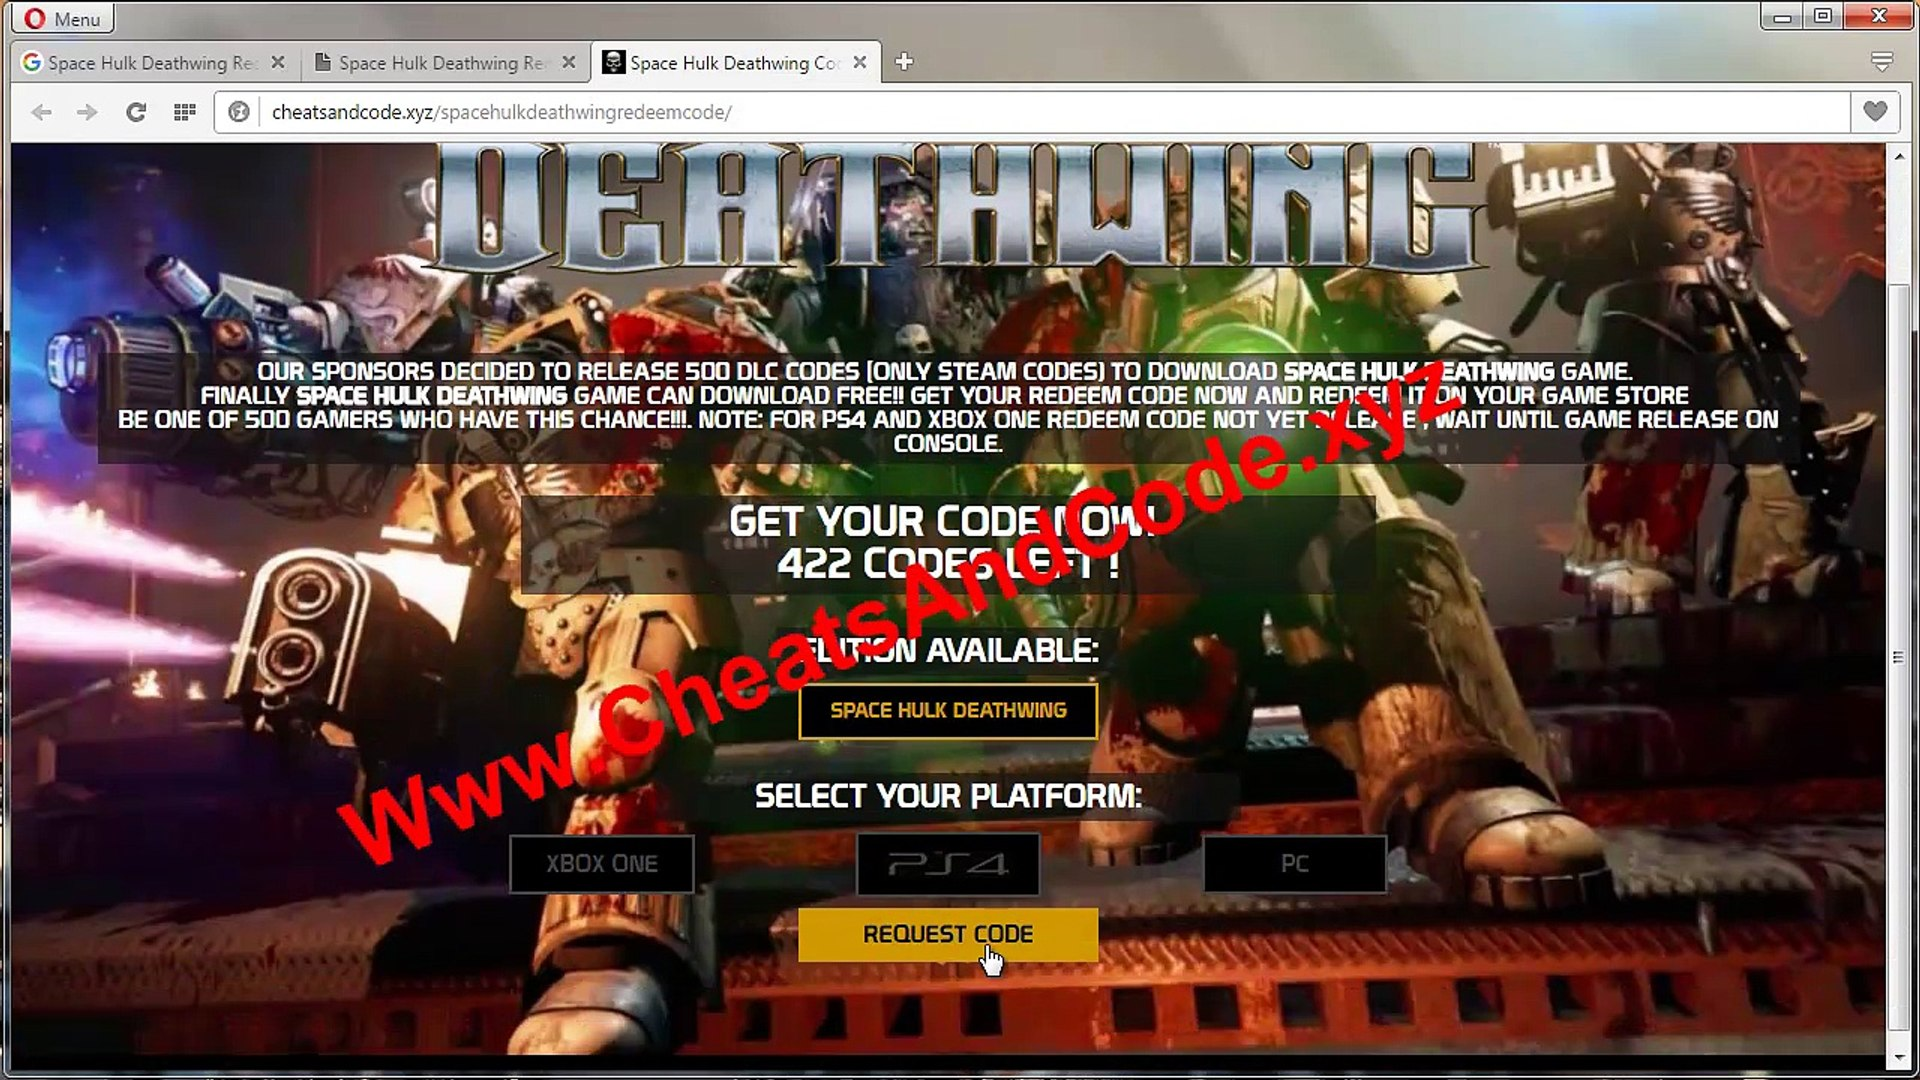 Space Hulk Deathwing Free Download PS4, Xbox One & PC